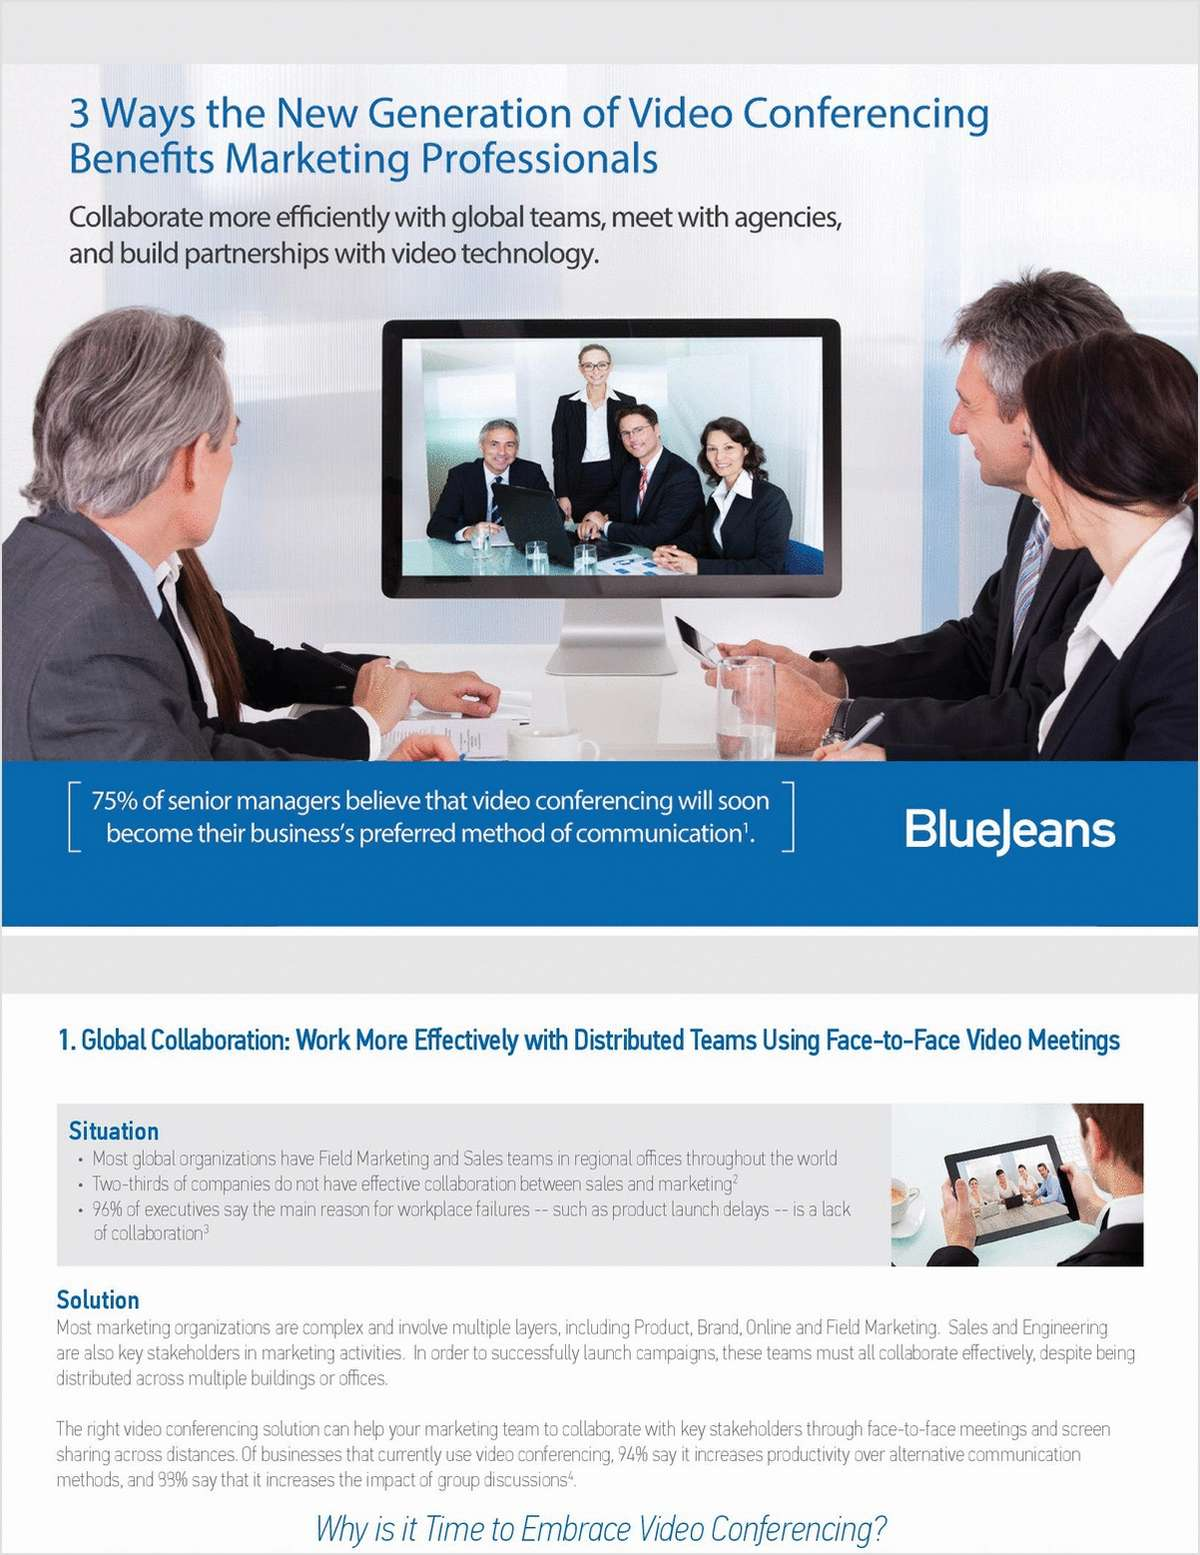 3 Ways the New Generation of Video Conferencing Benefits Marketing Professionals